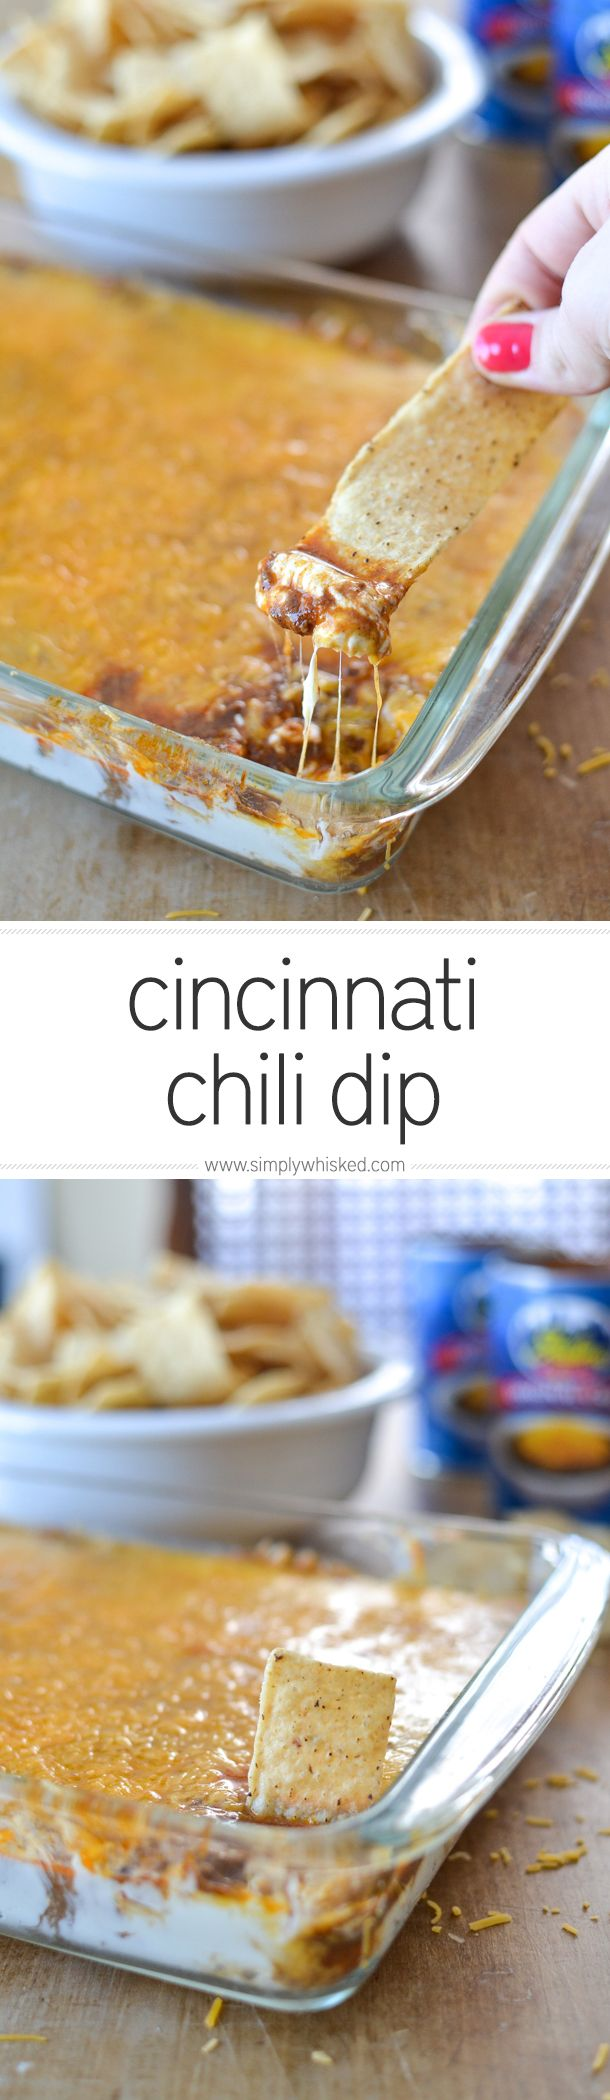 Cincinnati Chili Dip | football food | superbowl recipes | appetizer recipe | dip recipe | simplywhisked.com